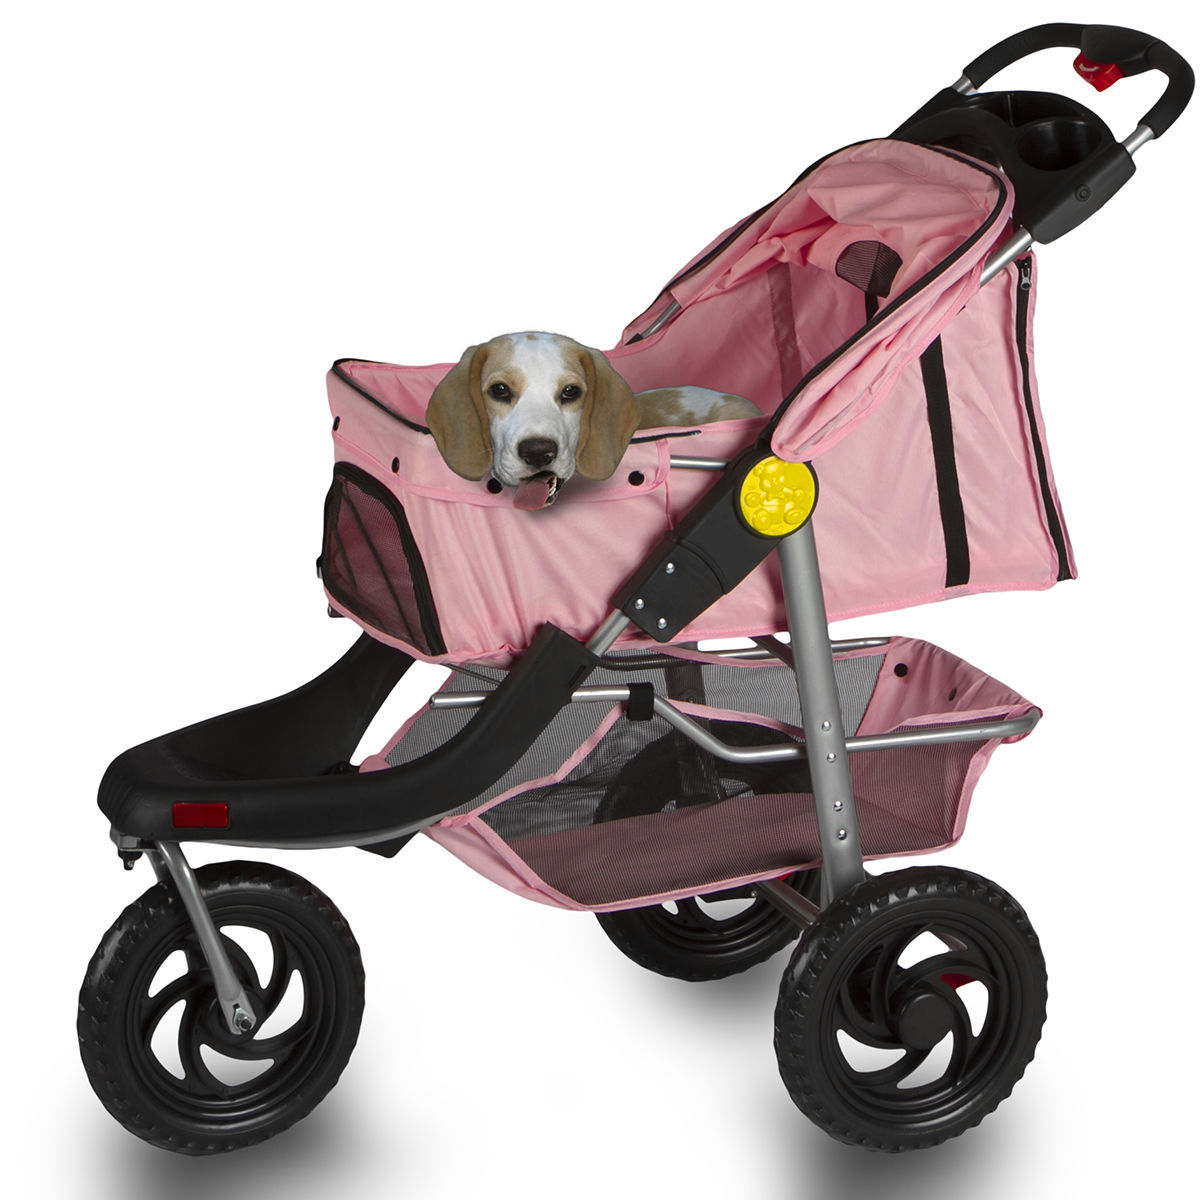 photo booth background ideas - New OxGord 3 Wheel Walk Jogger Pet Stroller Cat Dog Travel